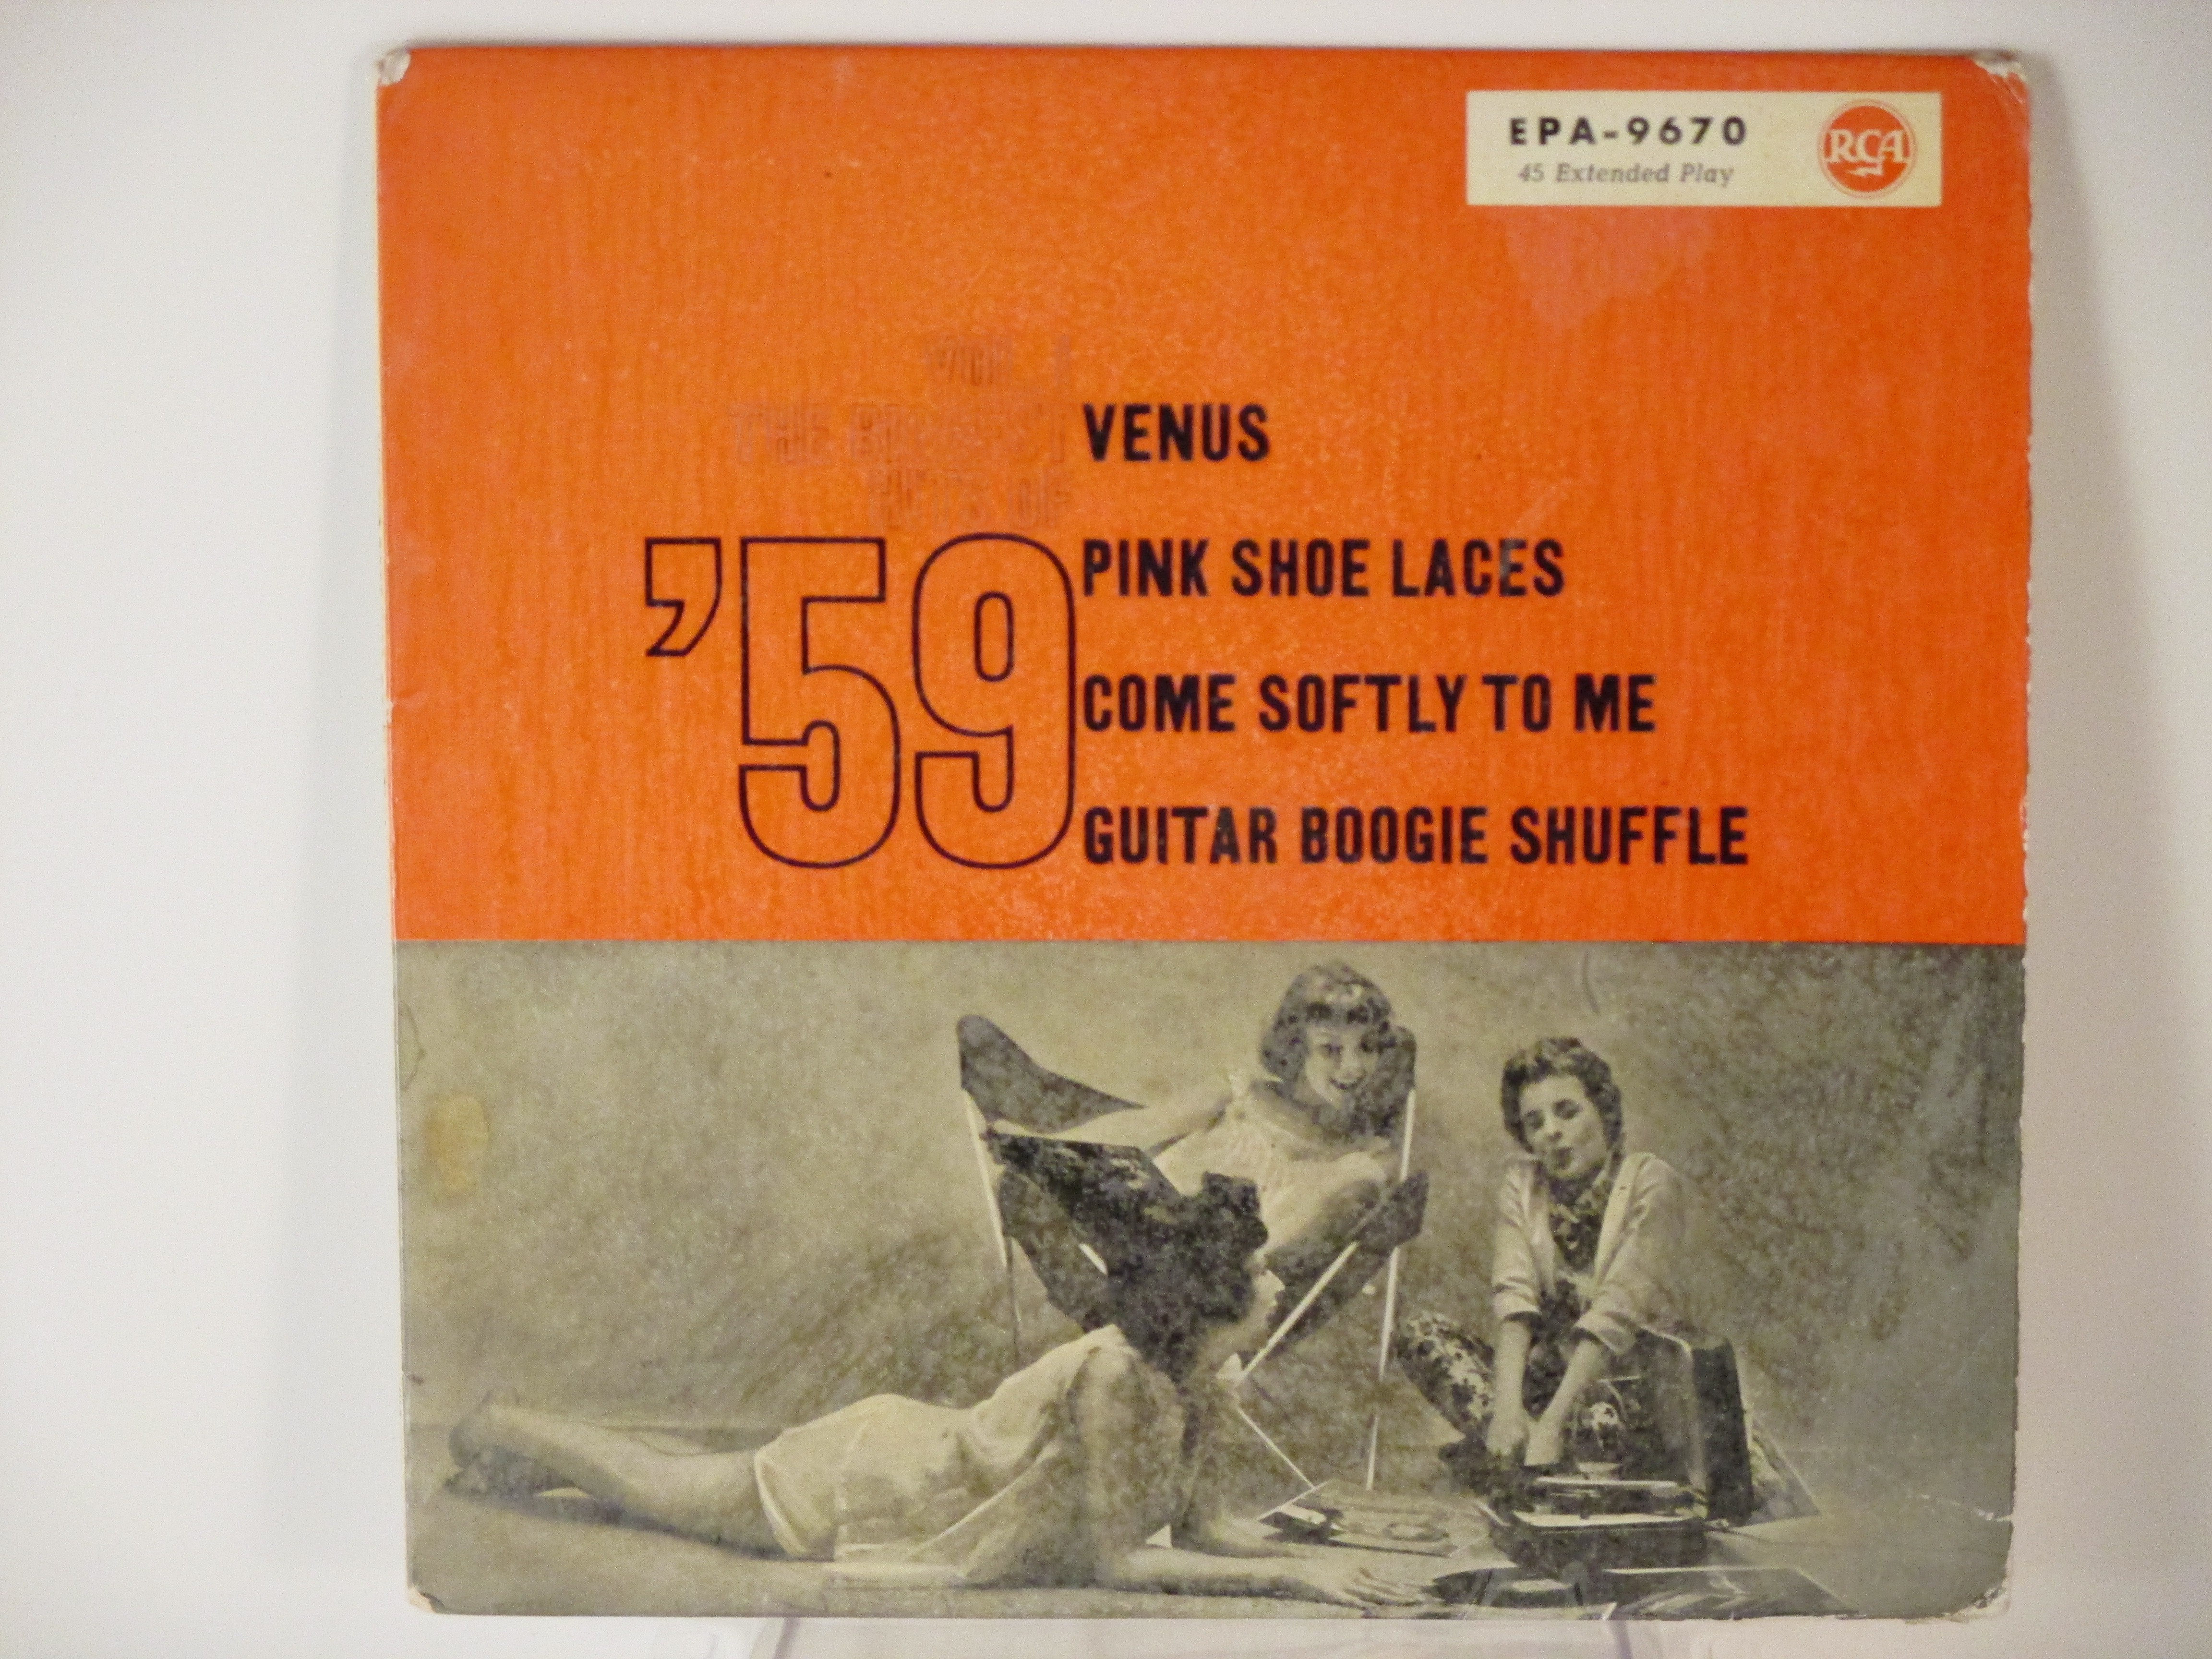 RCA CAMDEN ROCKERS : (EP) Venus / Pink shoe laces / Come softly to me / Guitar Boogie Shuffle